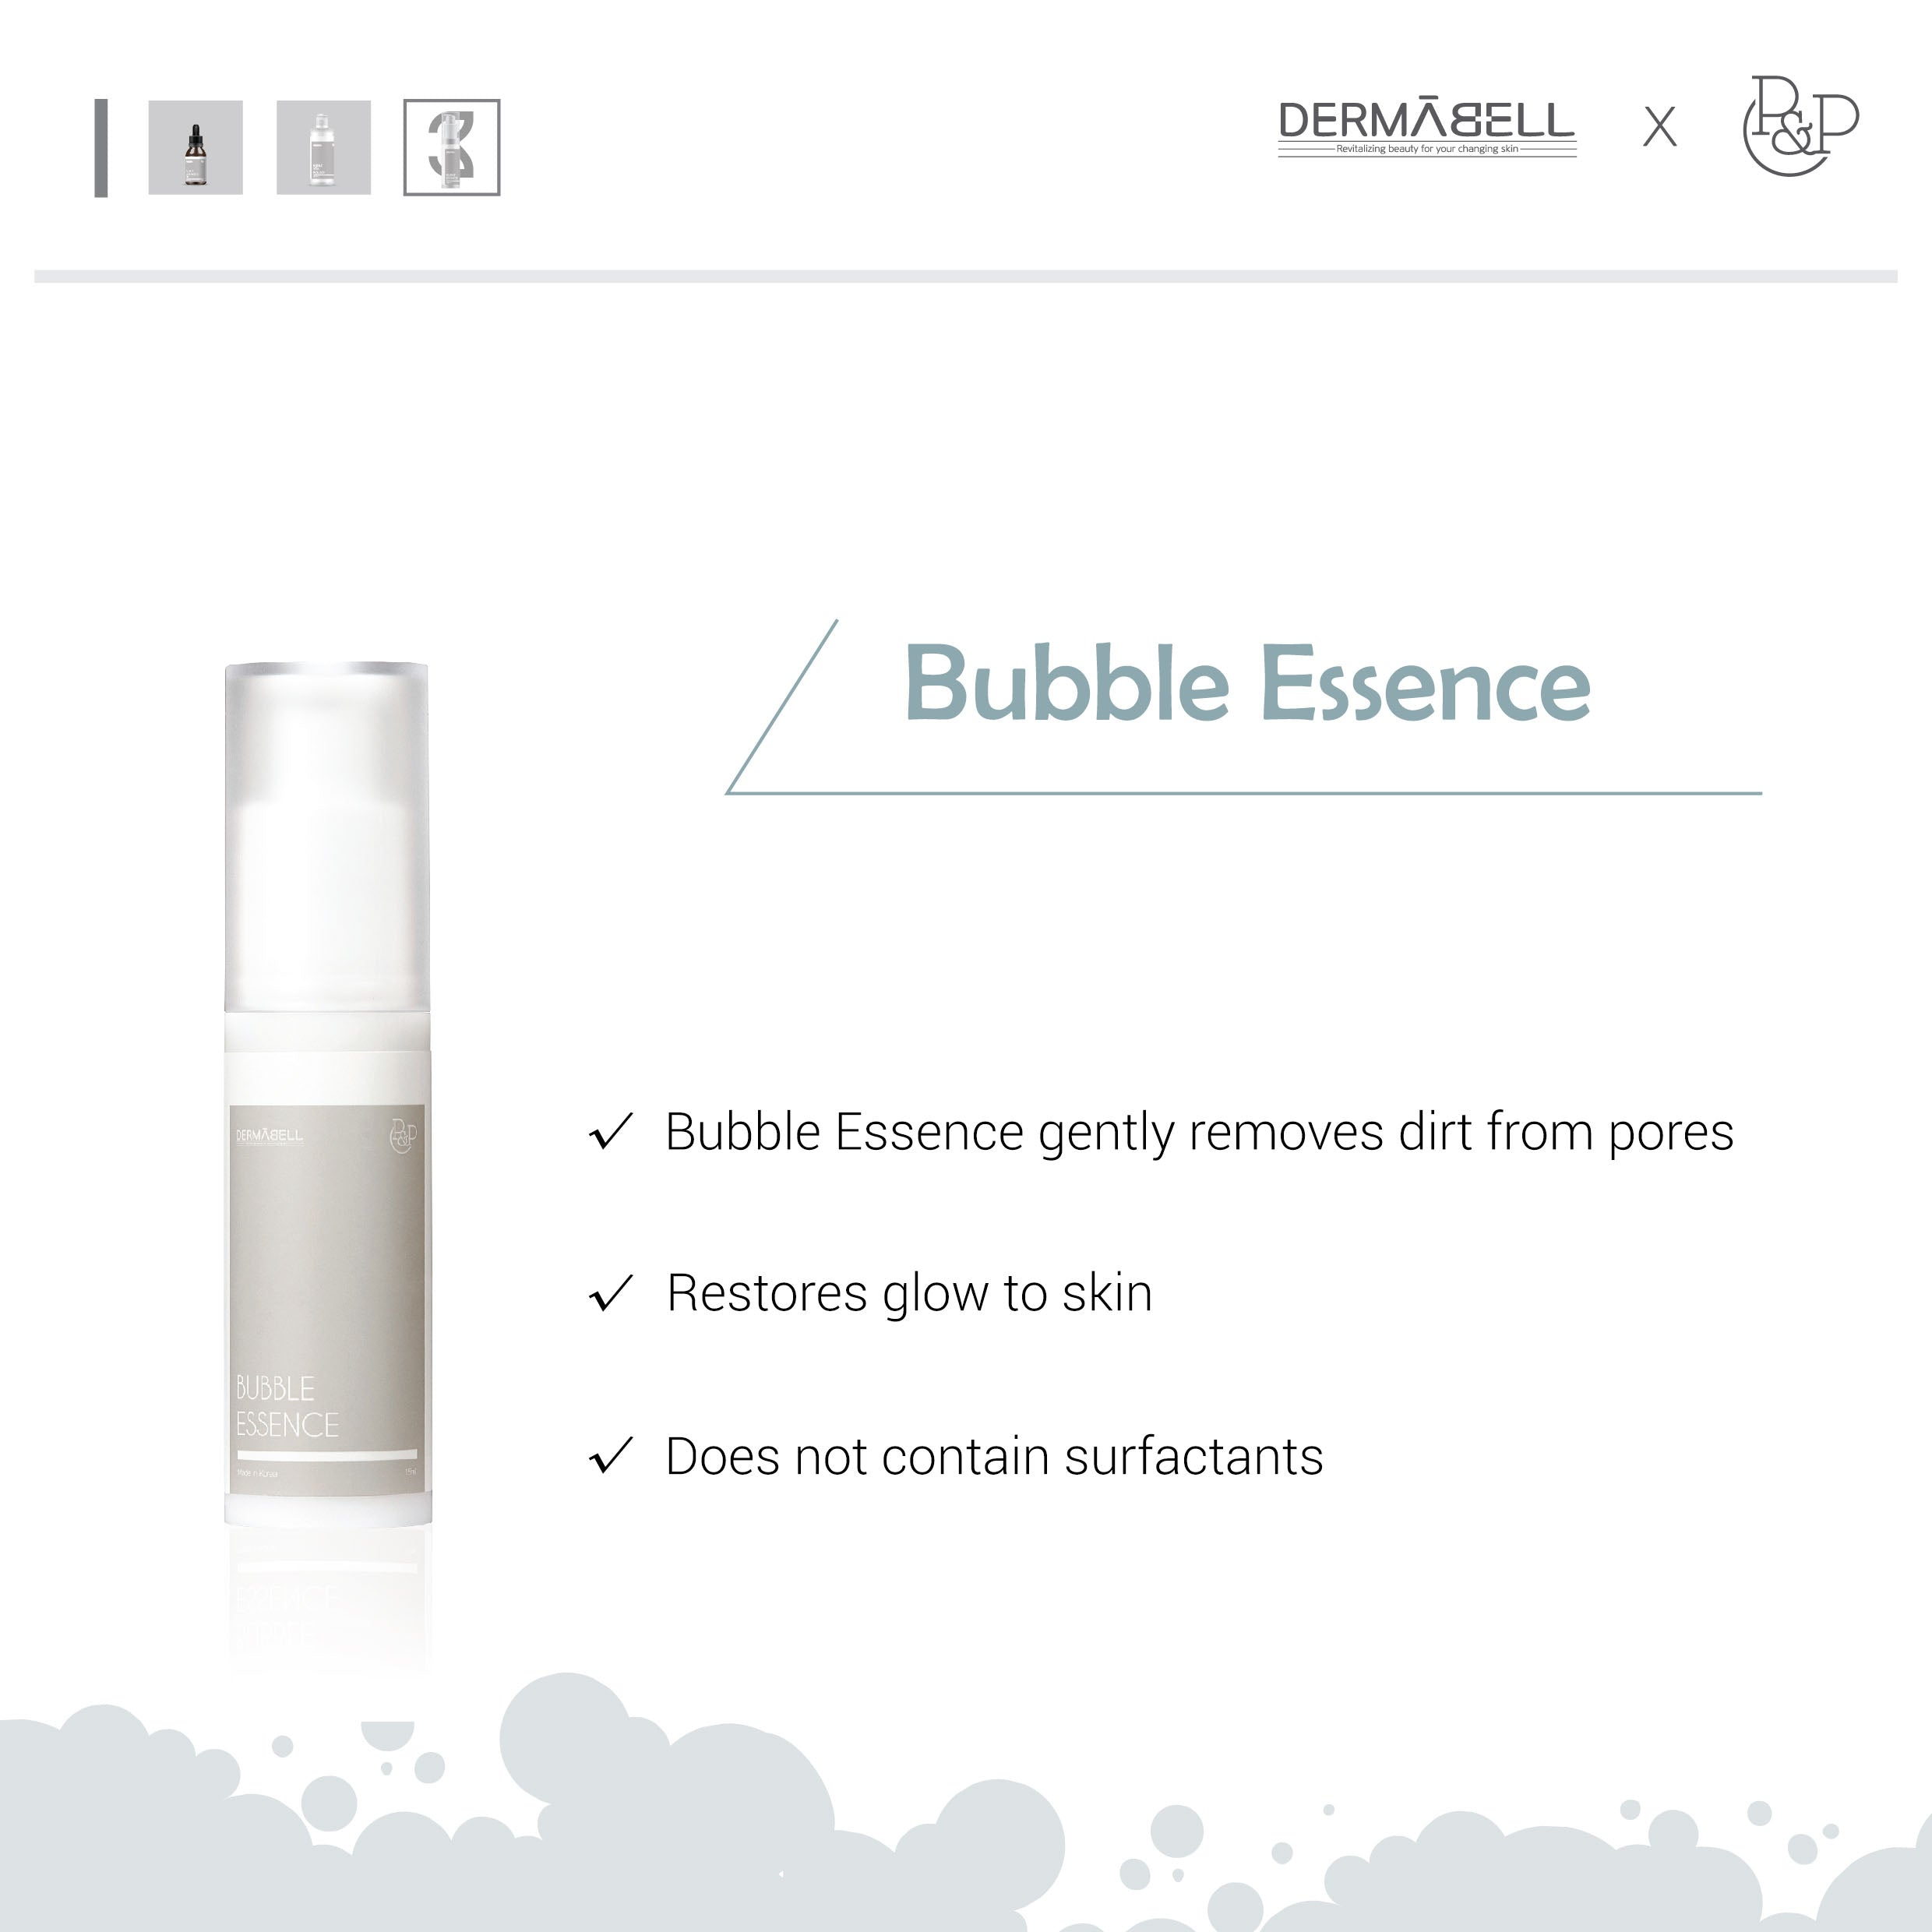 Bubble Peel Therapy Set Dermabell Therapy by DERMABELL PRO THERAPY. Kbeauty. Skincare. Cosmeceutical. Cosmetics. Singapore. Malaysia. Dermatologist.